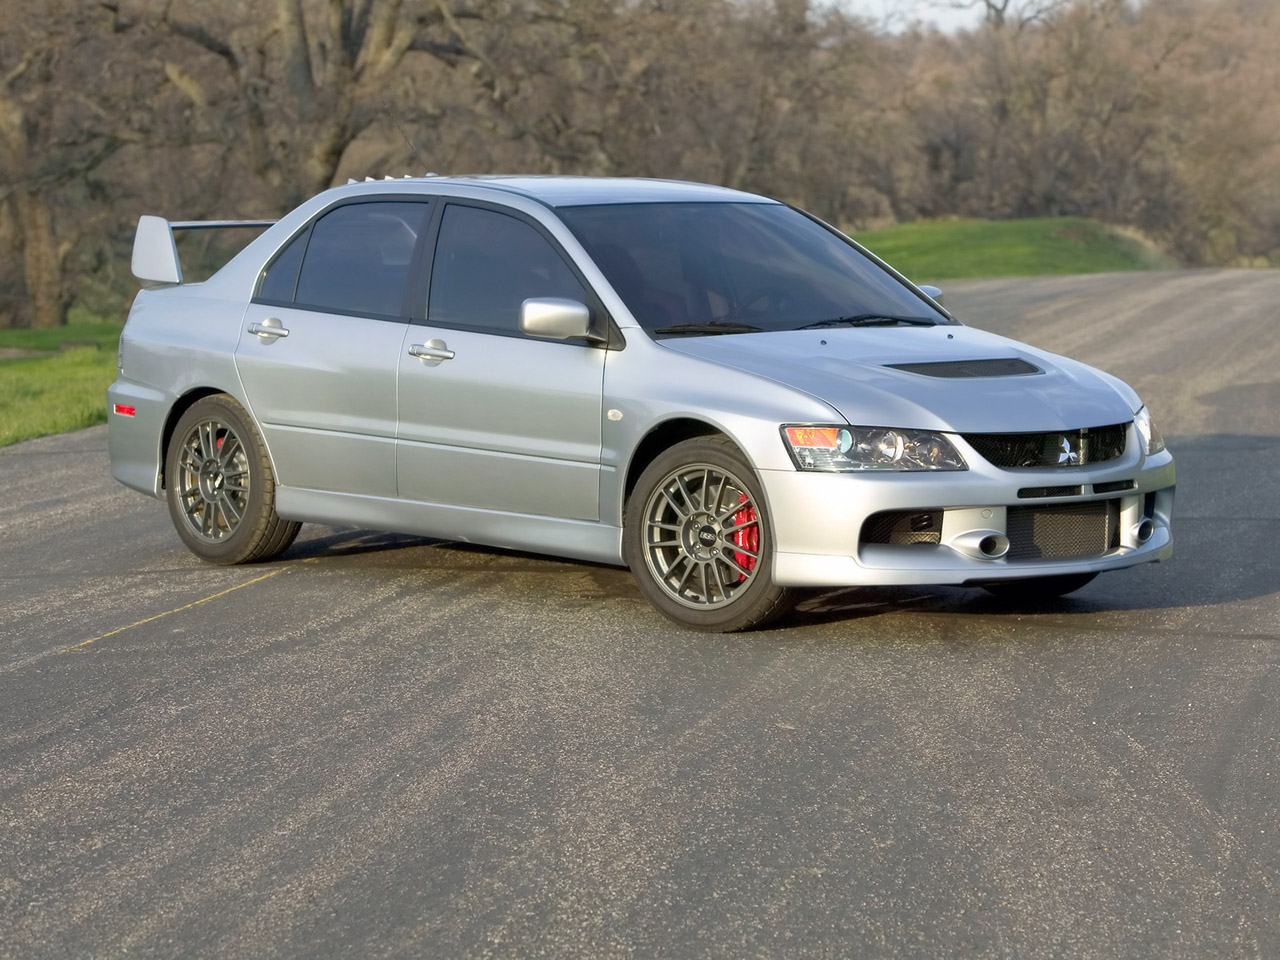 2006 mitsubishi lancer evolution pictures cargurus. Black Bedroom Furniture Sets. Home Design Ideas